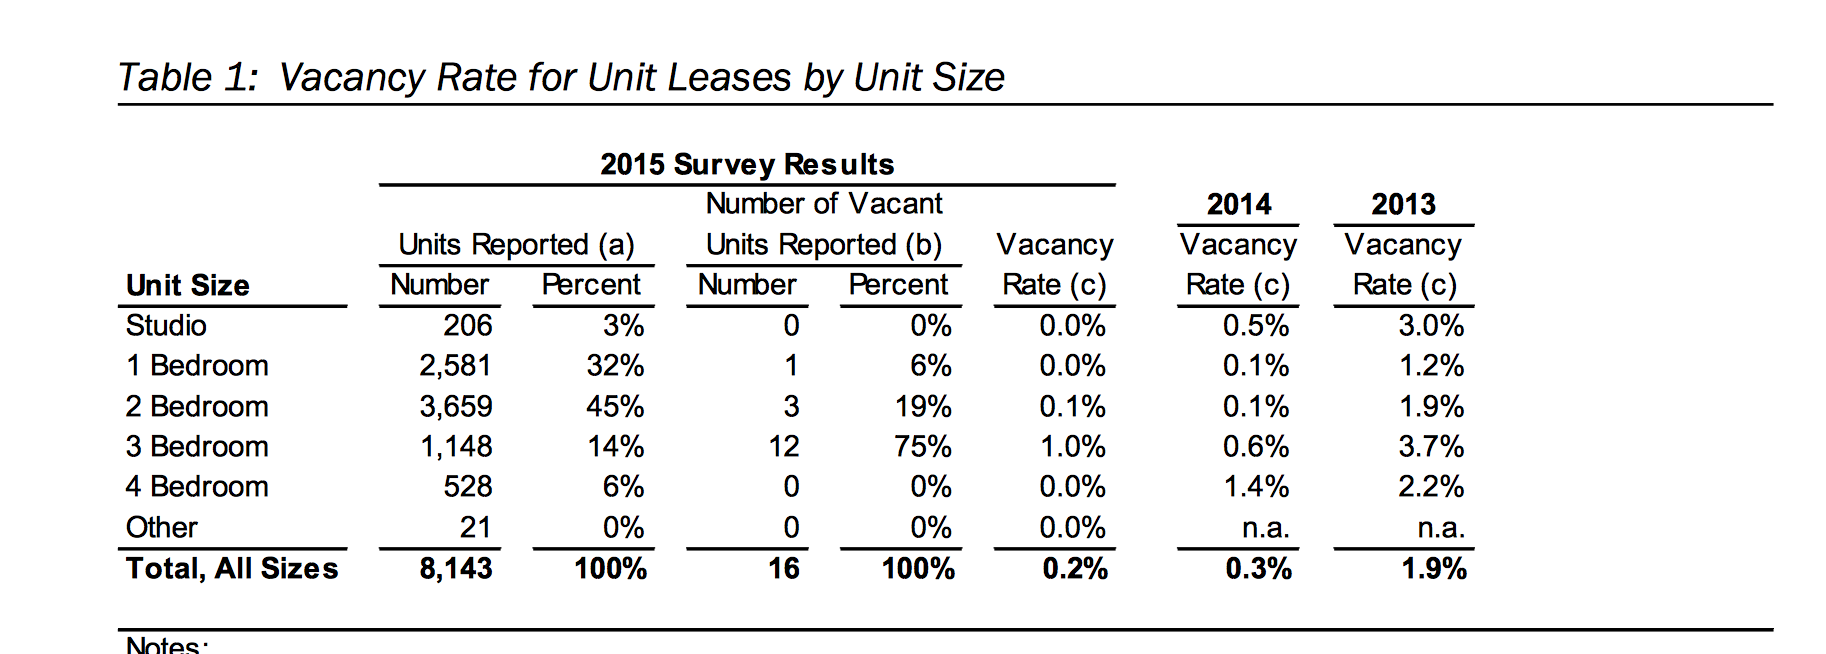 http://davismerchants.org/vanguard/UCD%20apartment%20vacancy%20rate%202015.png